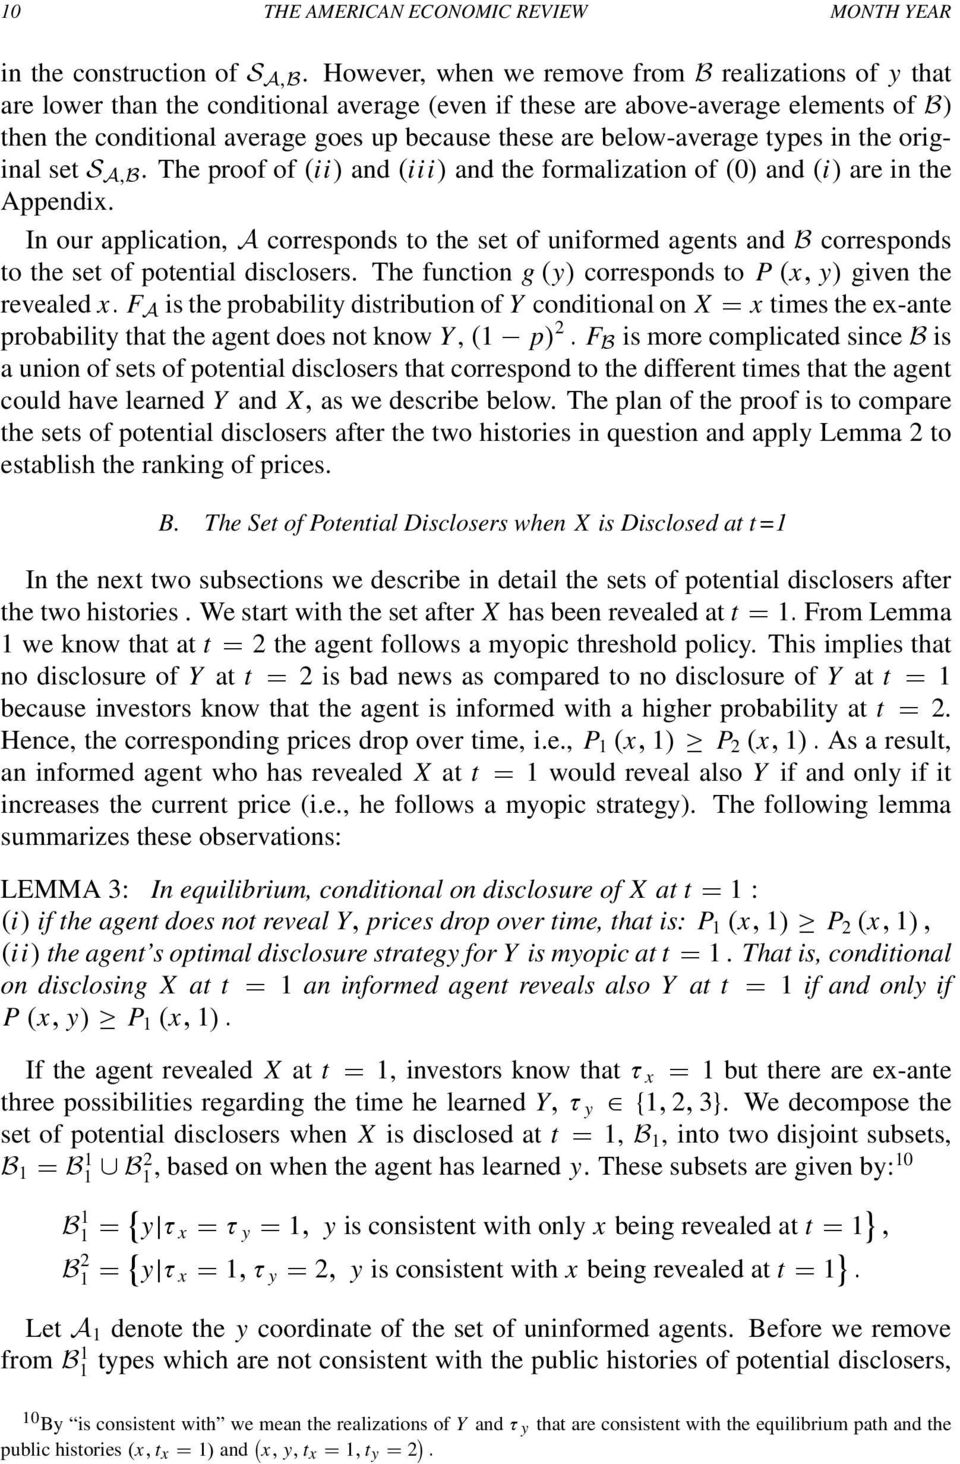 below-average types in the original set S A,B. The proof of (ii) and (iii) and the formalization of (0) and (i) are in the Appendix.